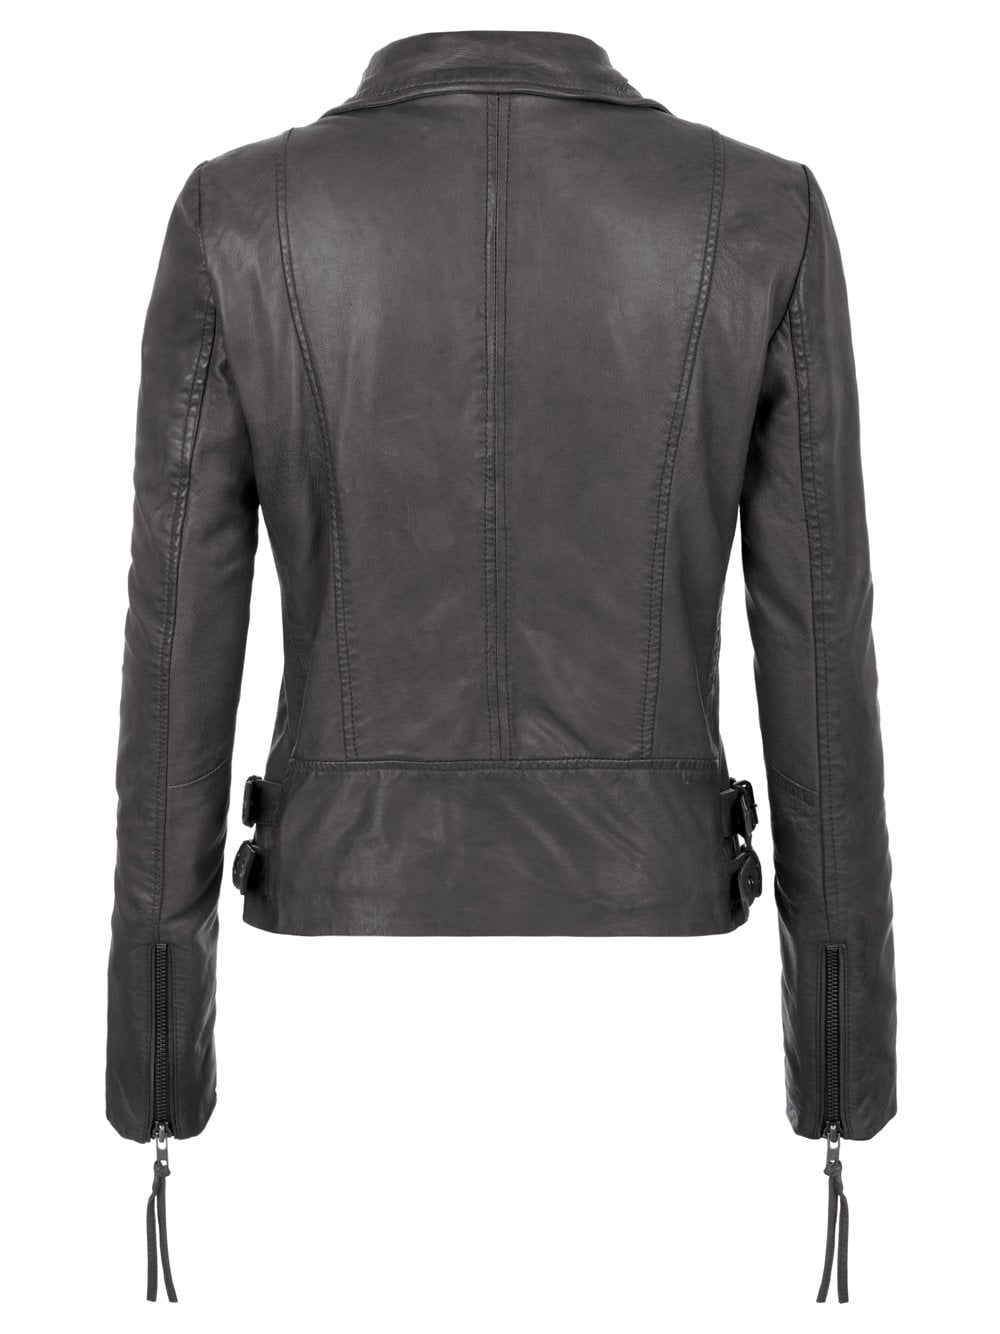 This exquisite and beautiful biker quilted grey leather jacket womens is kind of a feminist one. The best leather product a woman can need. With durable material known as Nappa sheepskin. Featuring zipper pockets and zip closure.